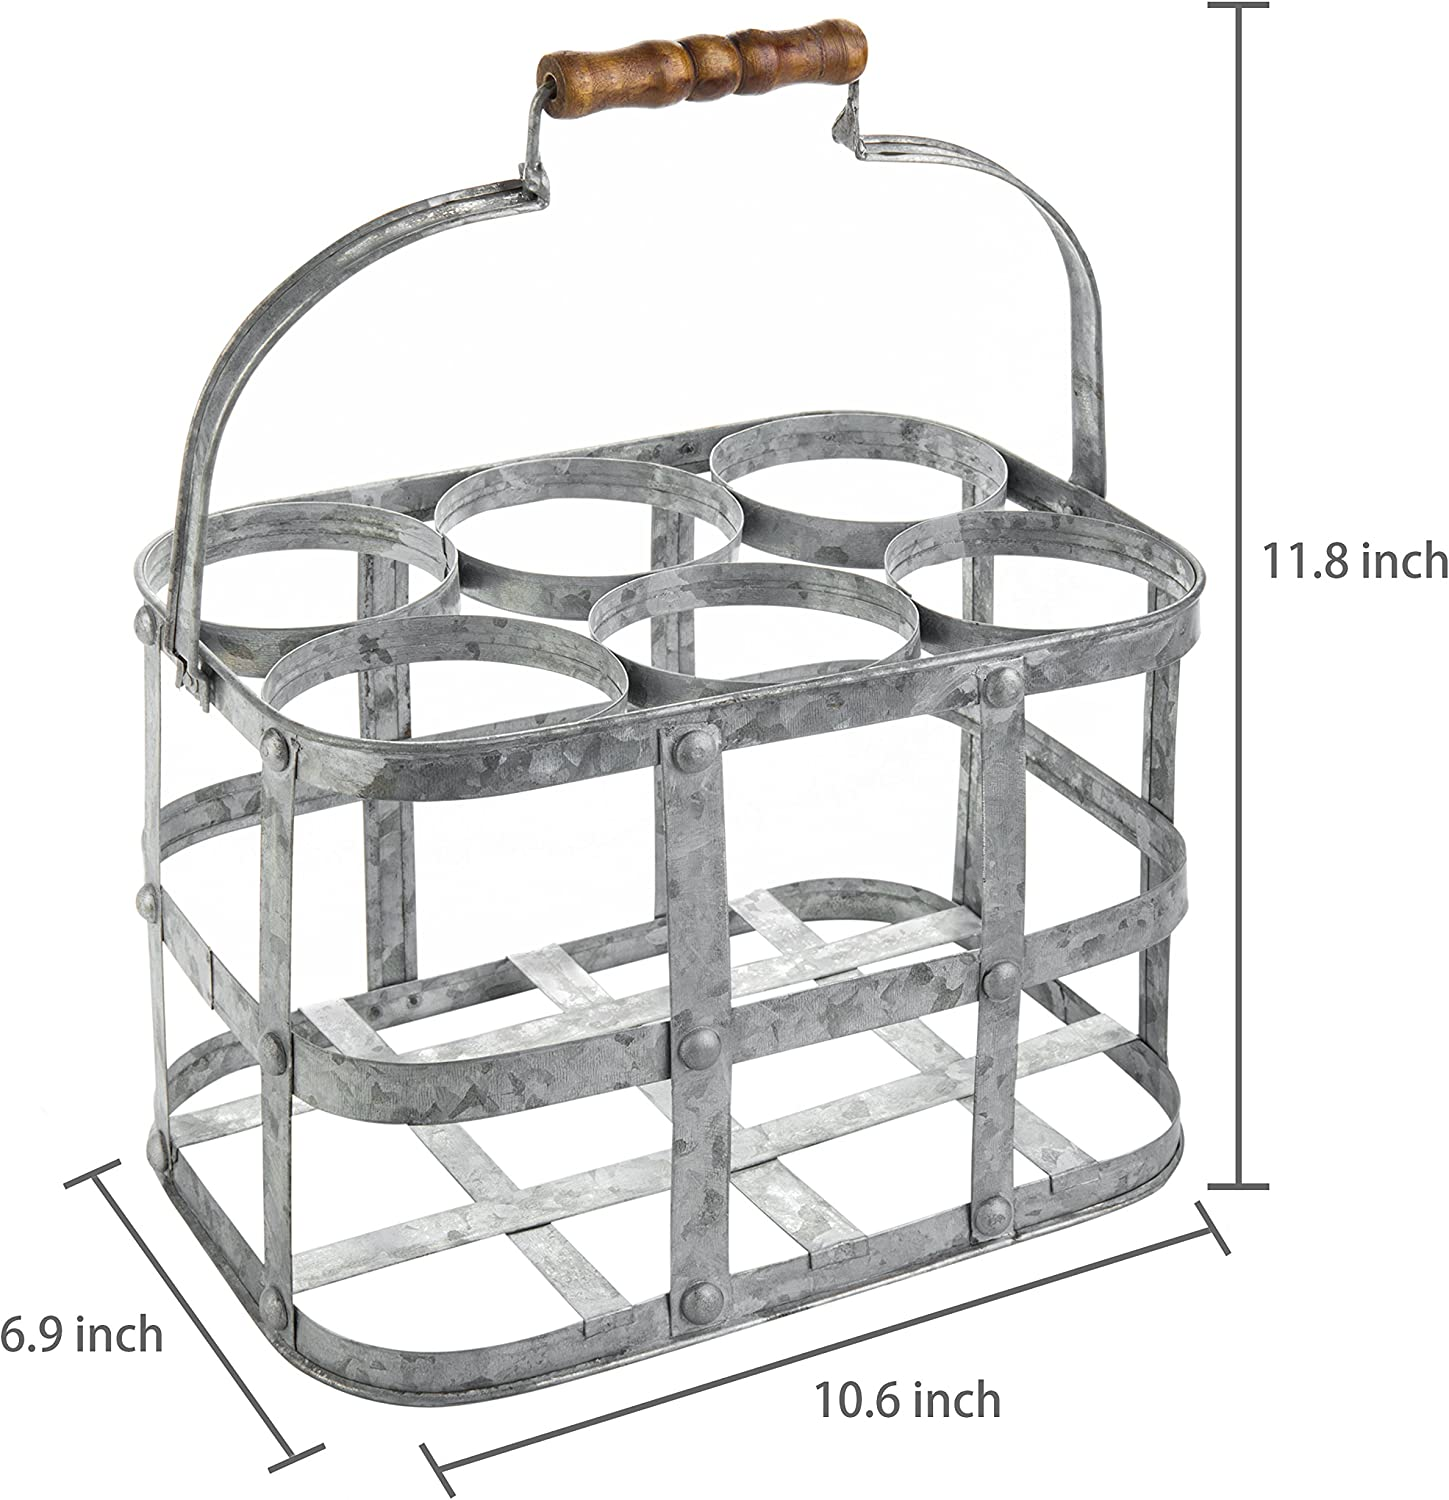 MyGift Farmhouse Style 6-Bottle Zinc Metal Wine Bottle Carrier Caddy with Wooden Handle